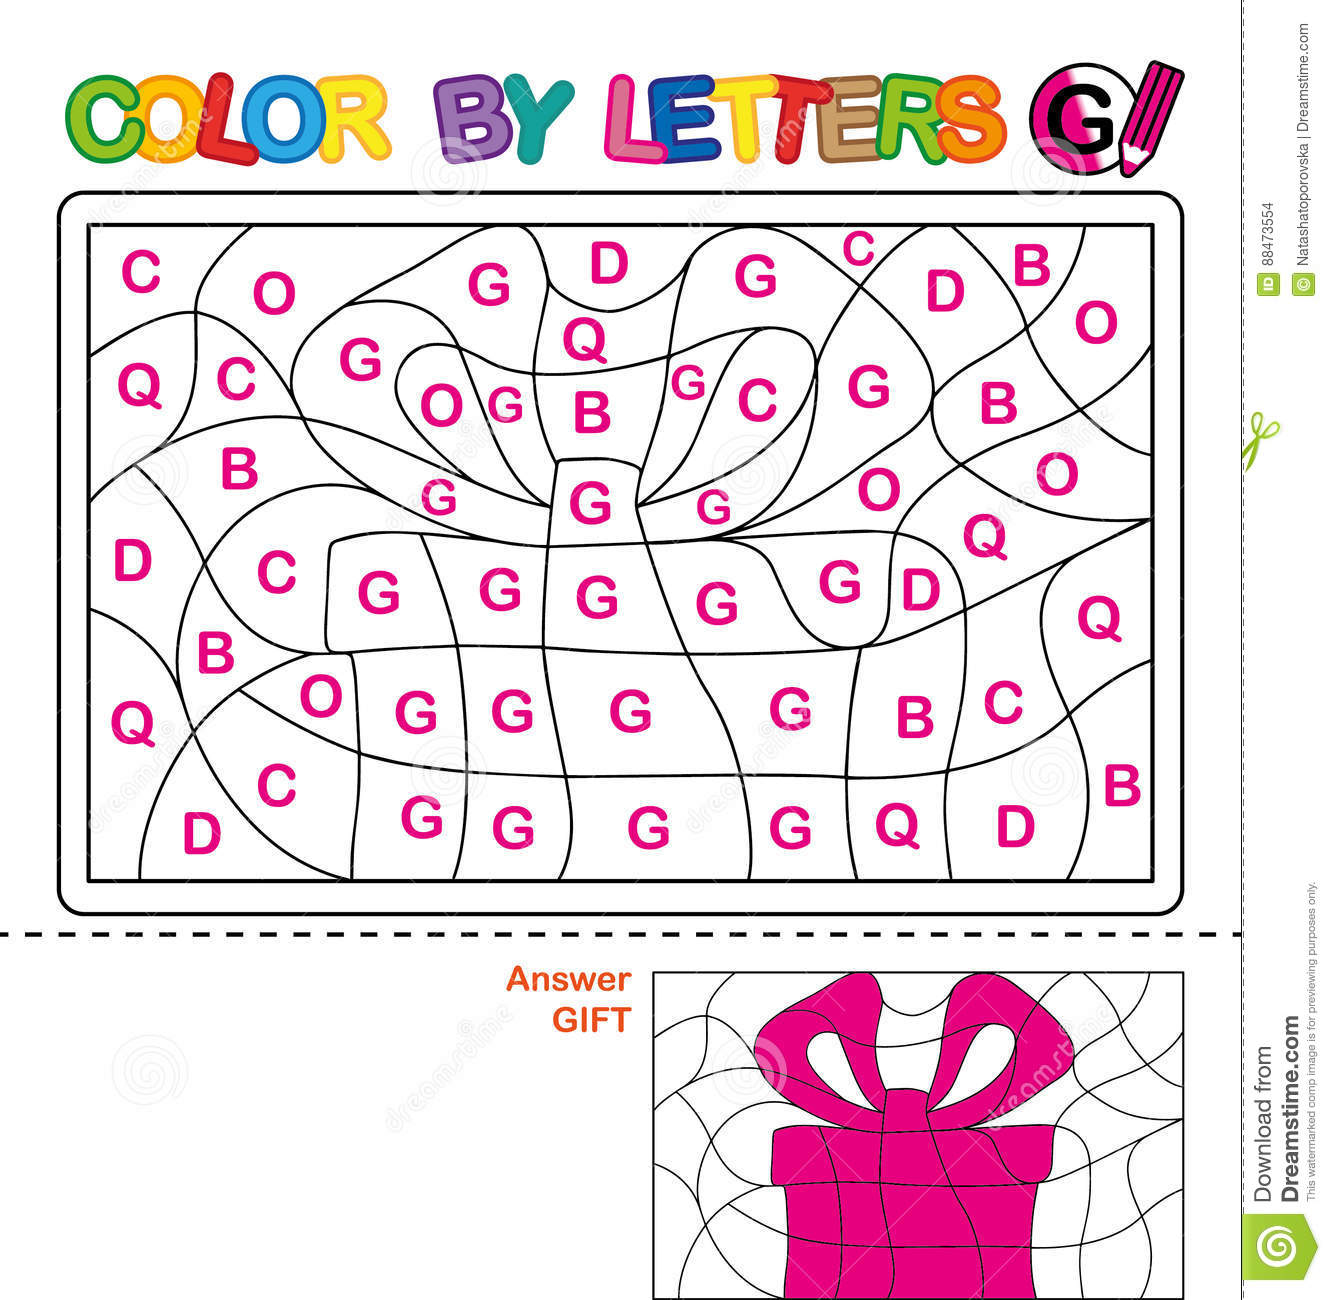 Download Color By Letter Puzzle For Children Gift Stock Vector